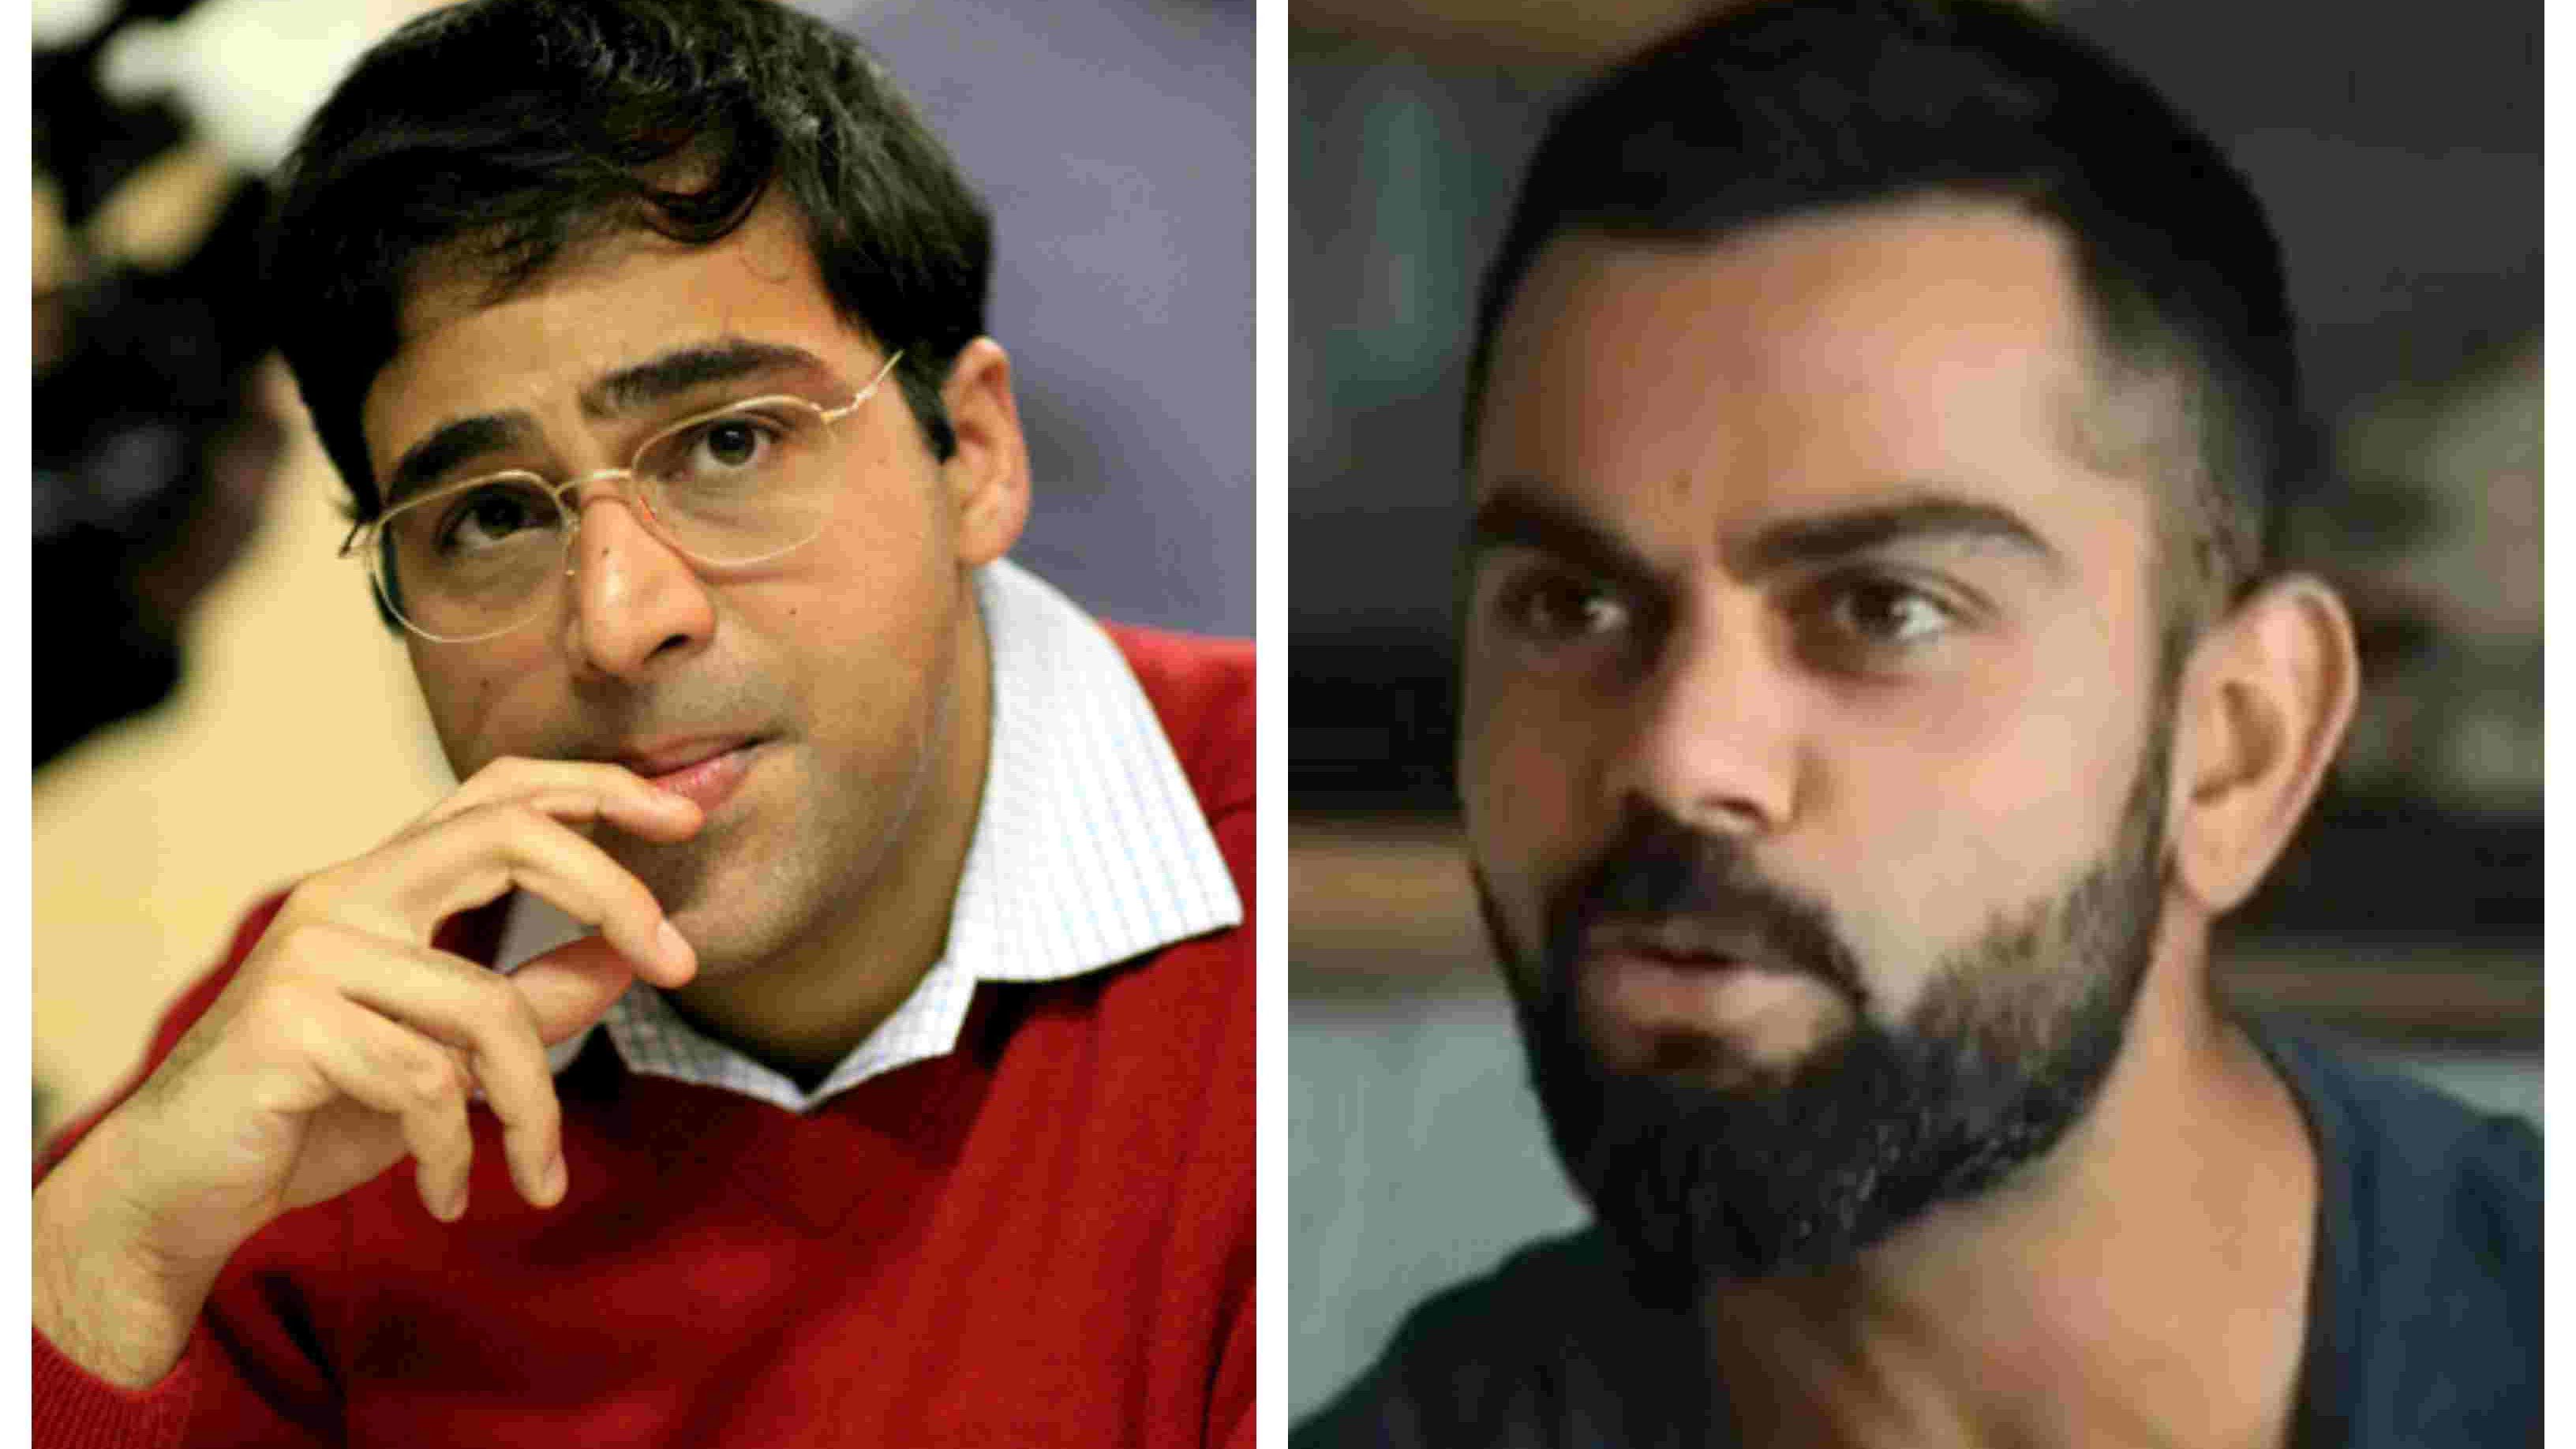 Virat Kohli got emotional while making 'leave India' comment, says Viswanathan Anand